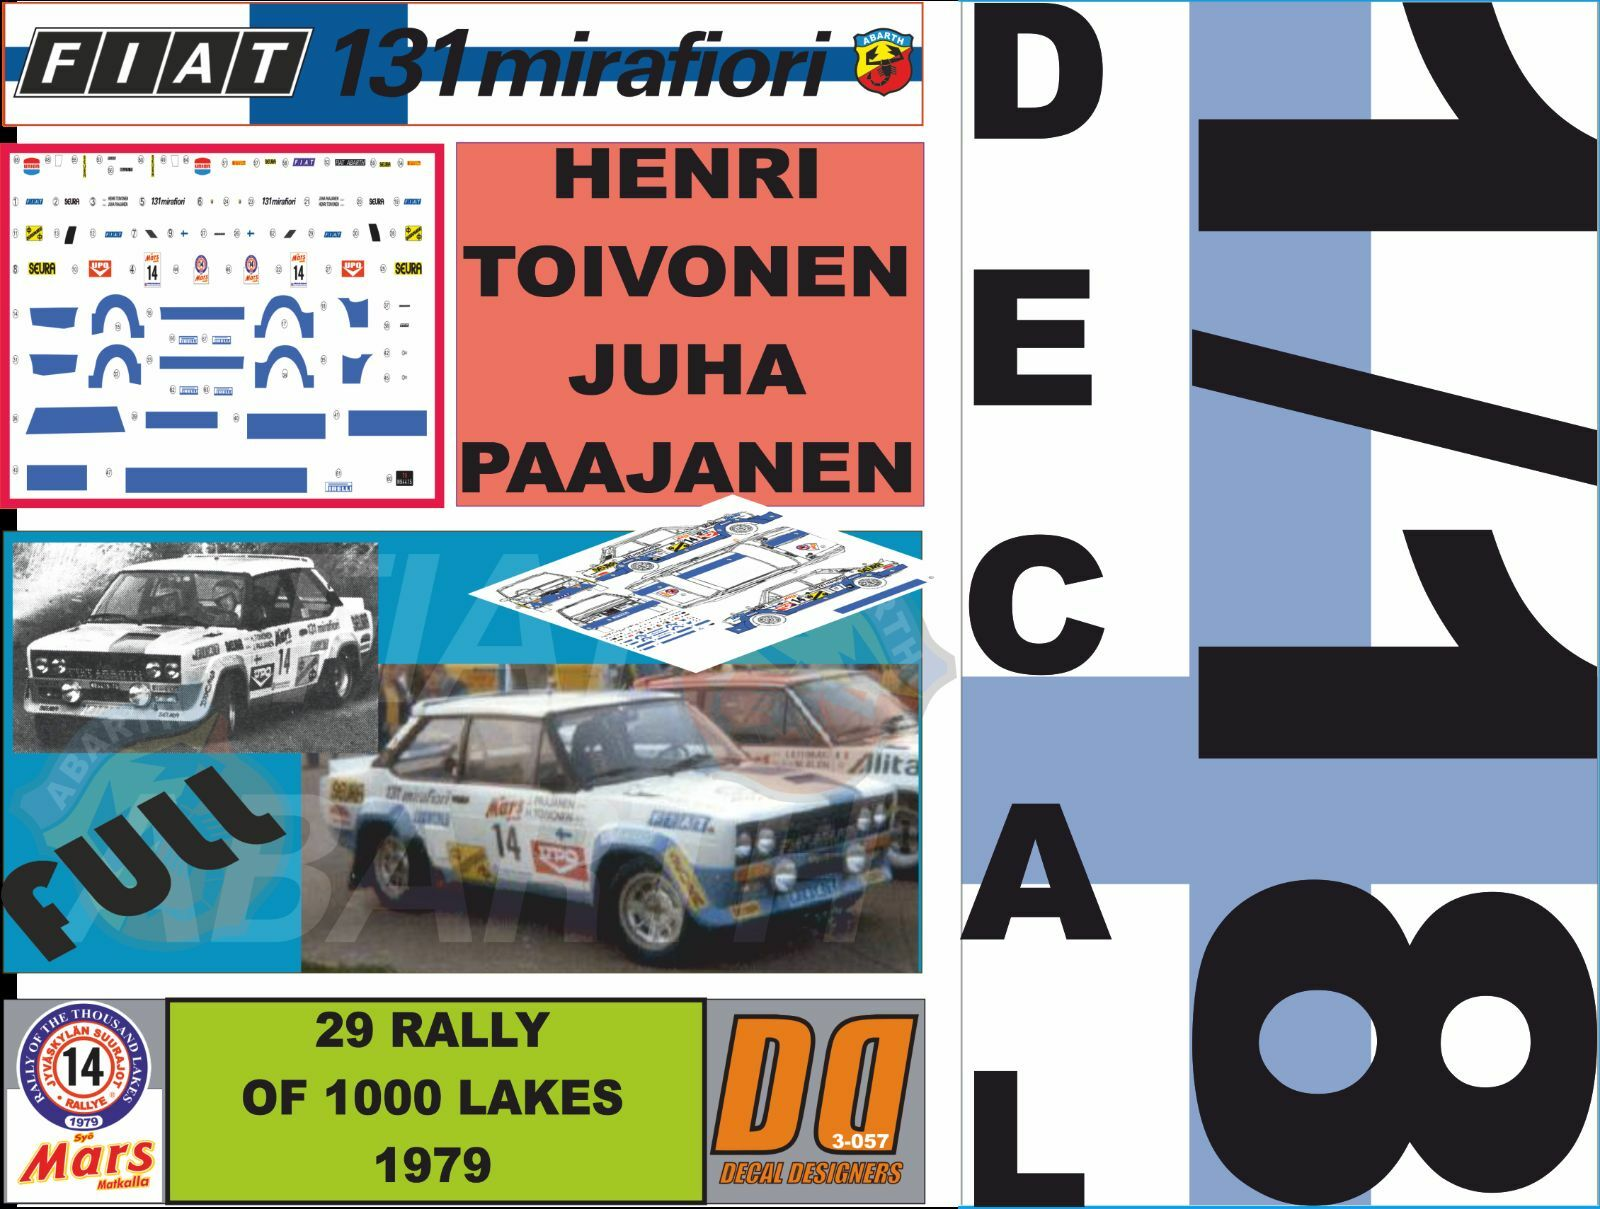 DECAL 1 18 FIAT 131 ABARTH H.TOIVONEN 1000 LAKES 1979 (FULL) (06)